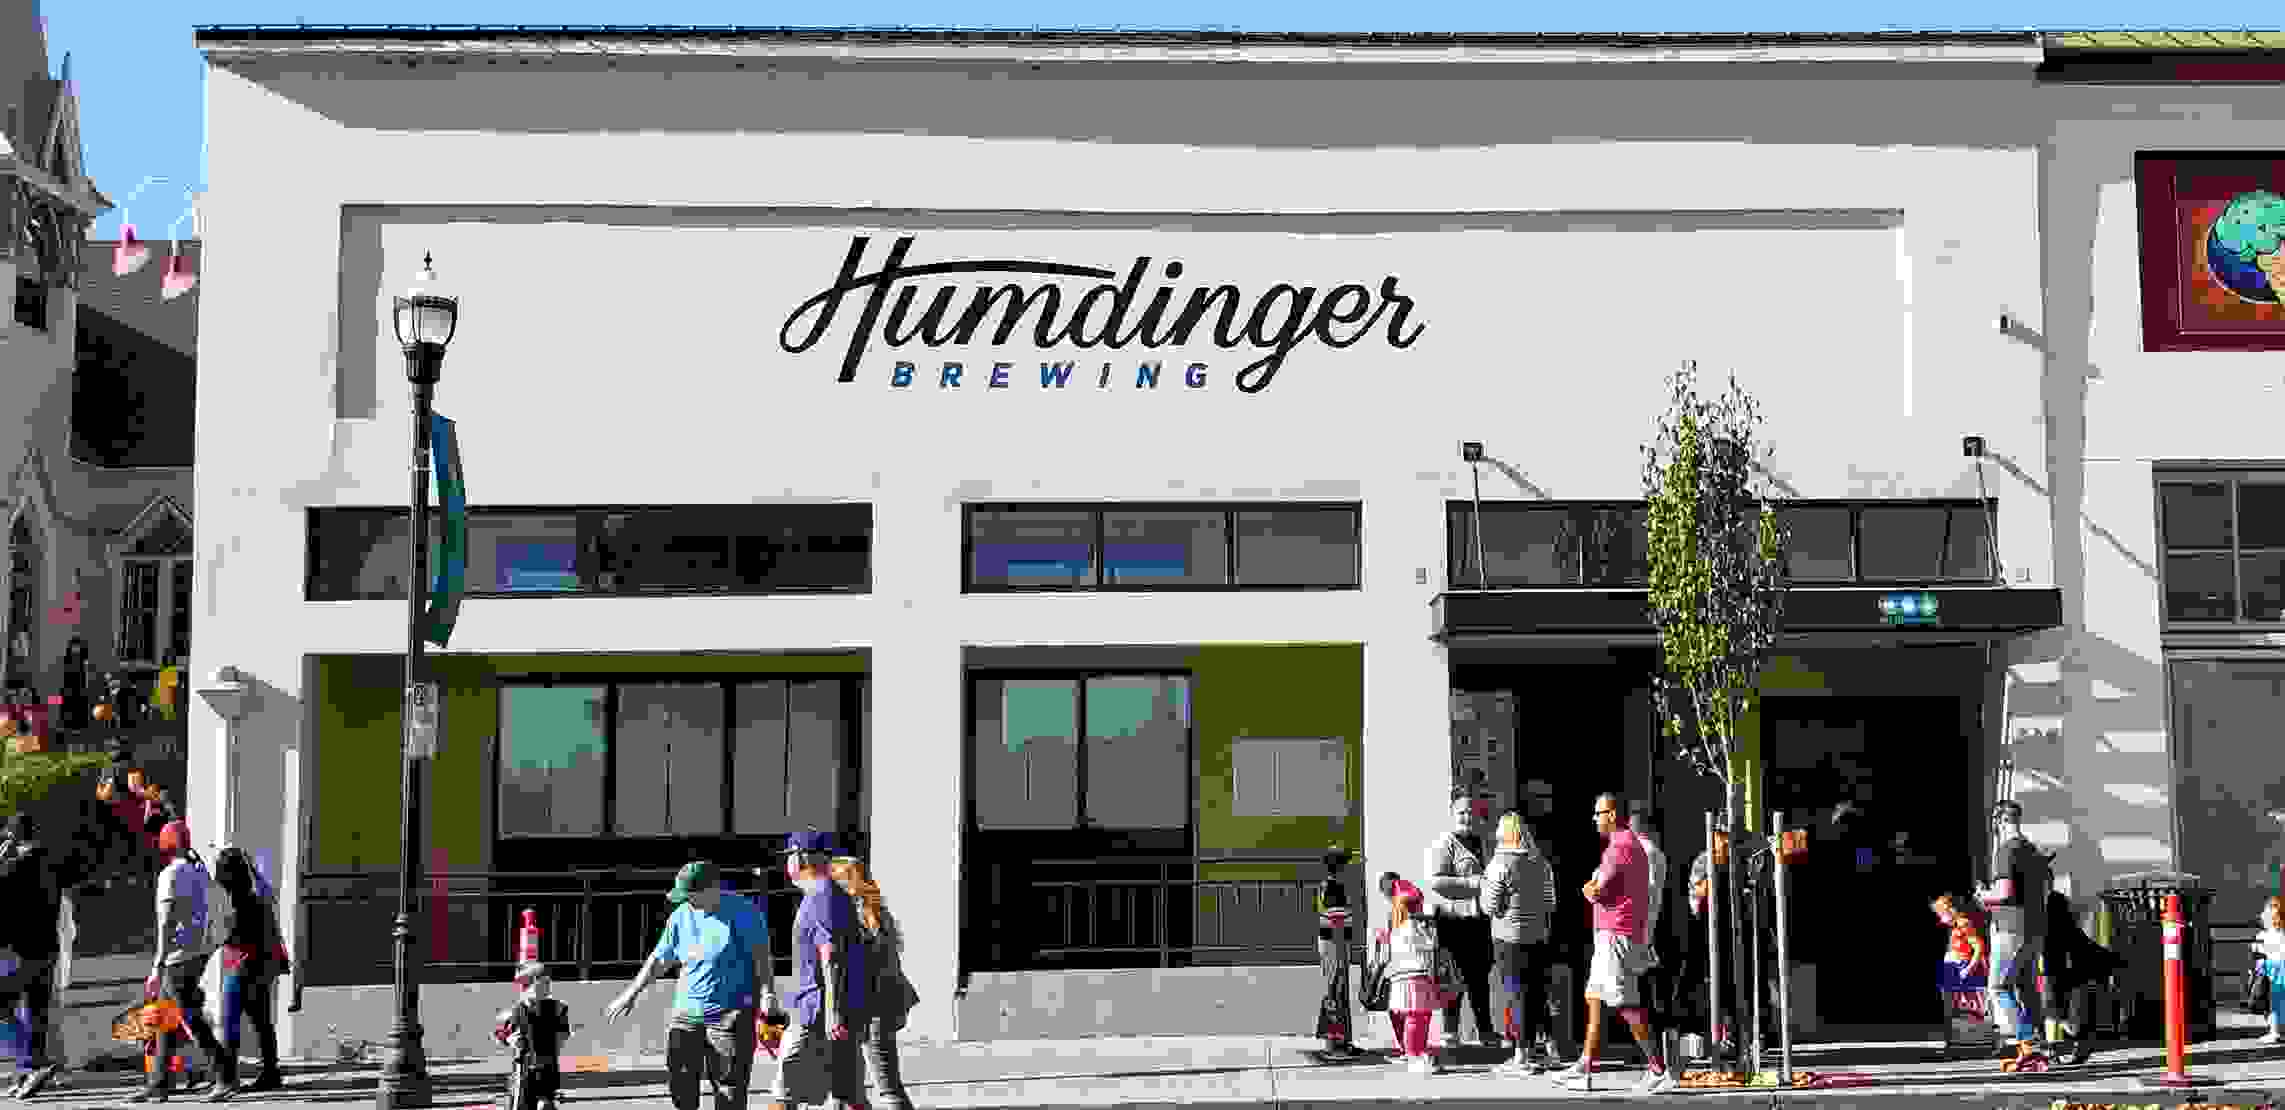 Restaurant and brewery in arroyo grande Humdinger Brewing